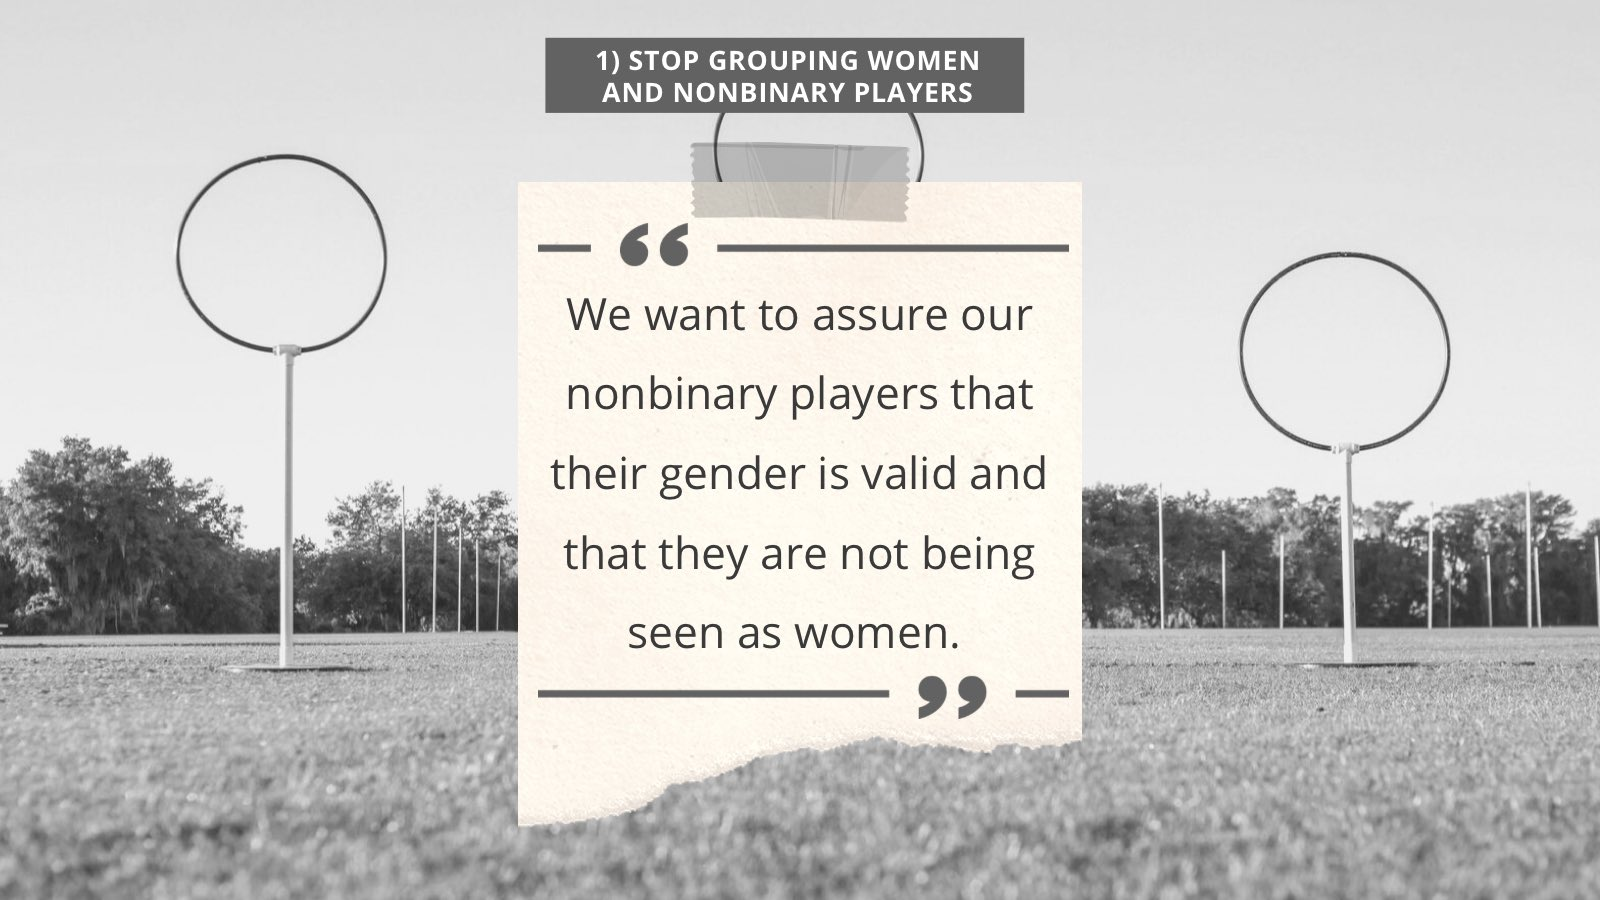 The first takeaway is to stop grouping women and nonbinary players.